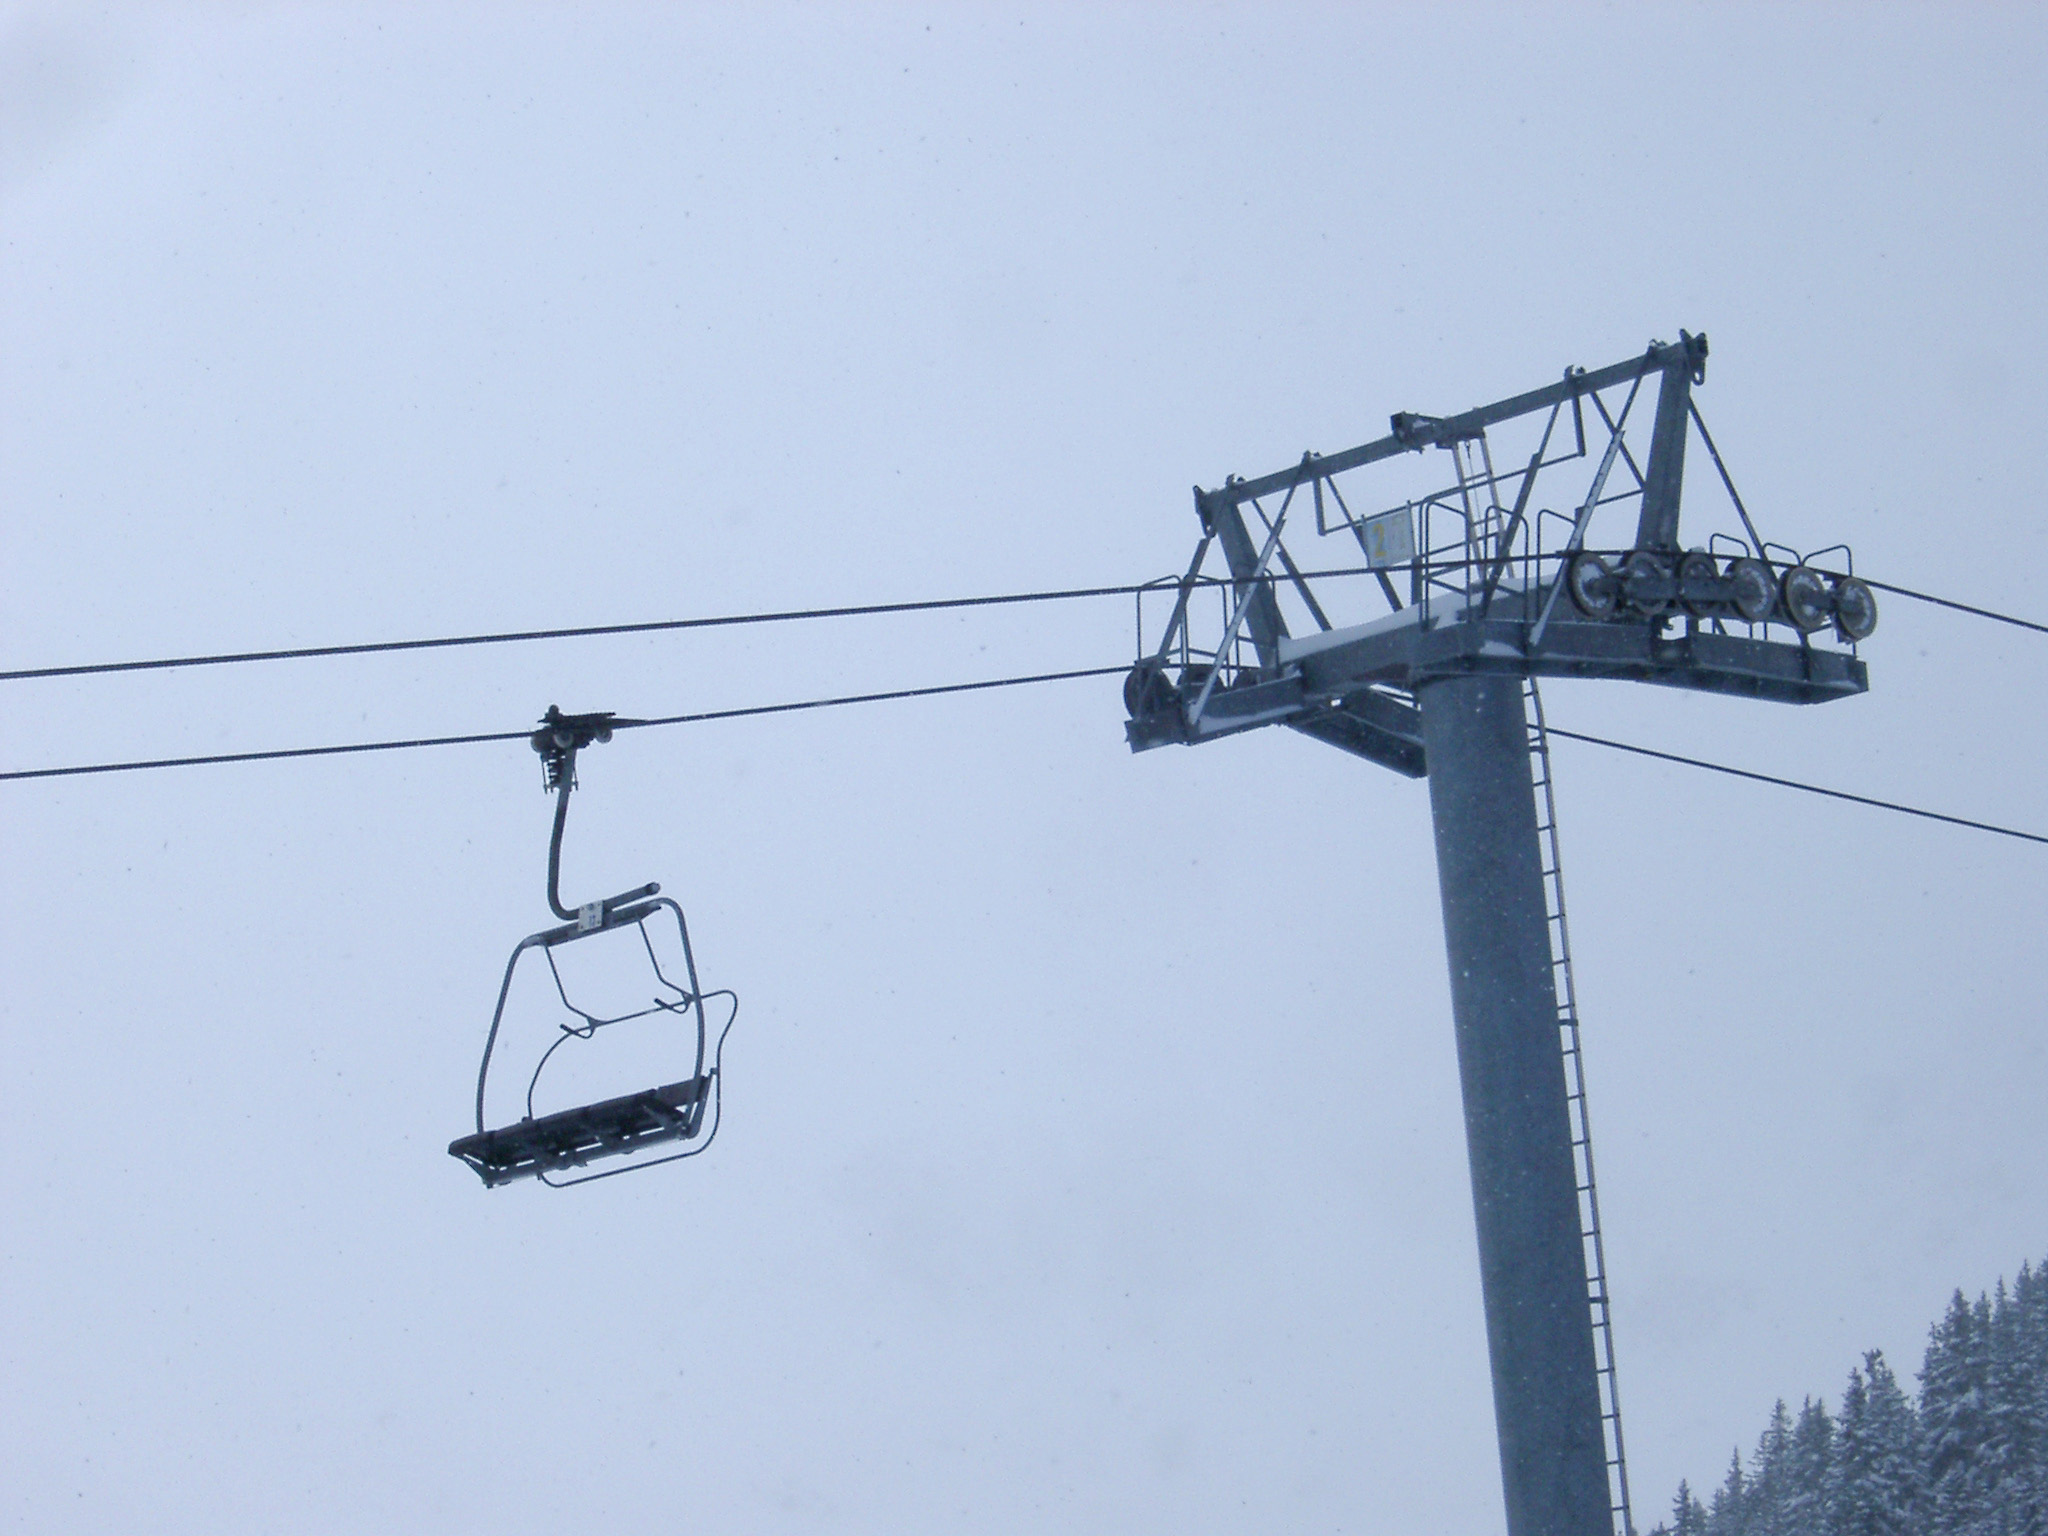 Cable car or Alpine chair lift for taking tourists and skiers to the mountain ski slopes with an empty chair suspended close to a pylon or tower